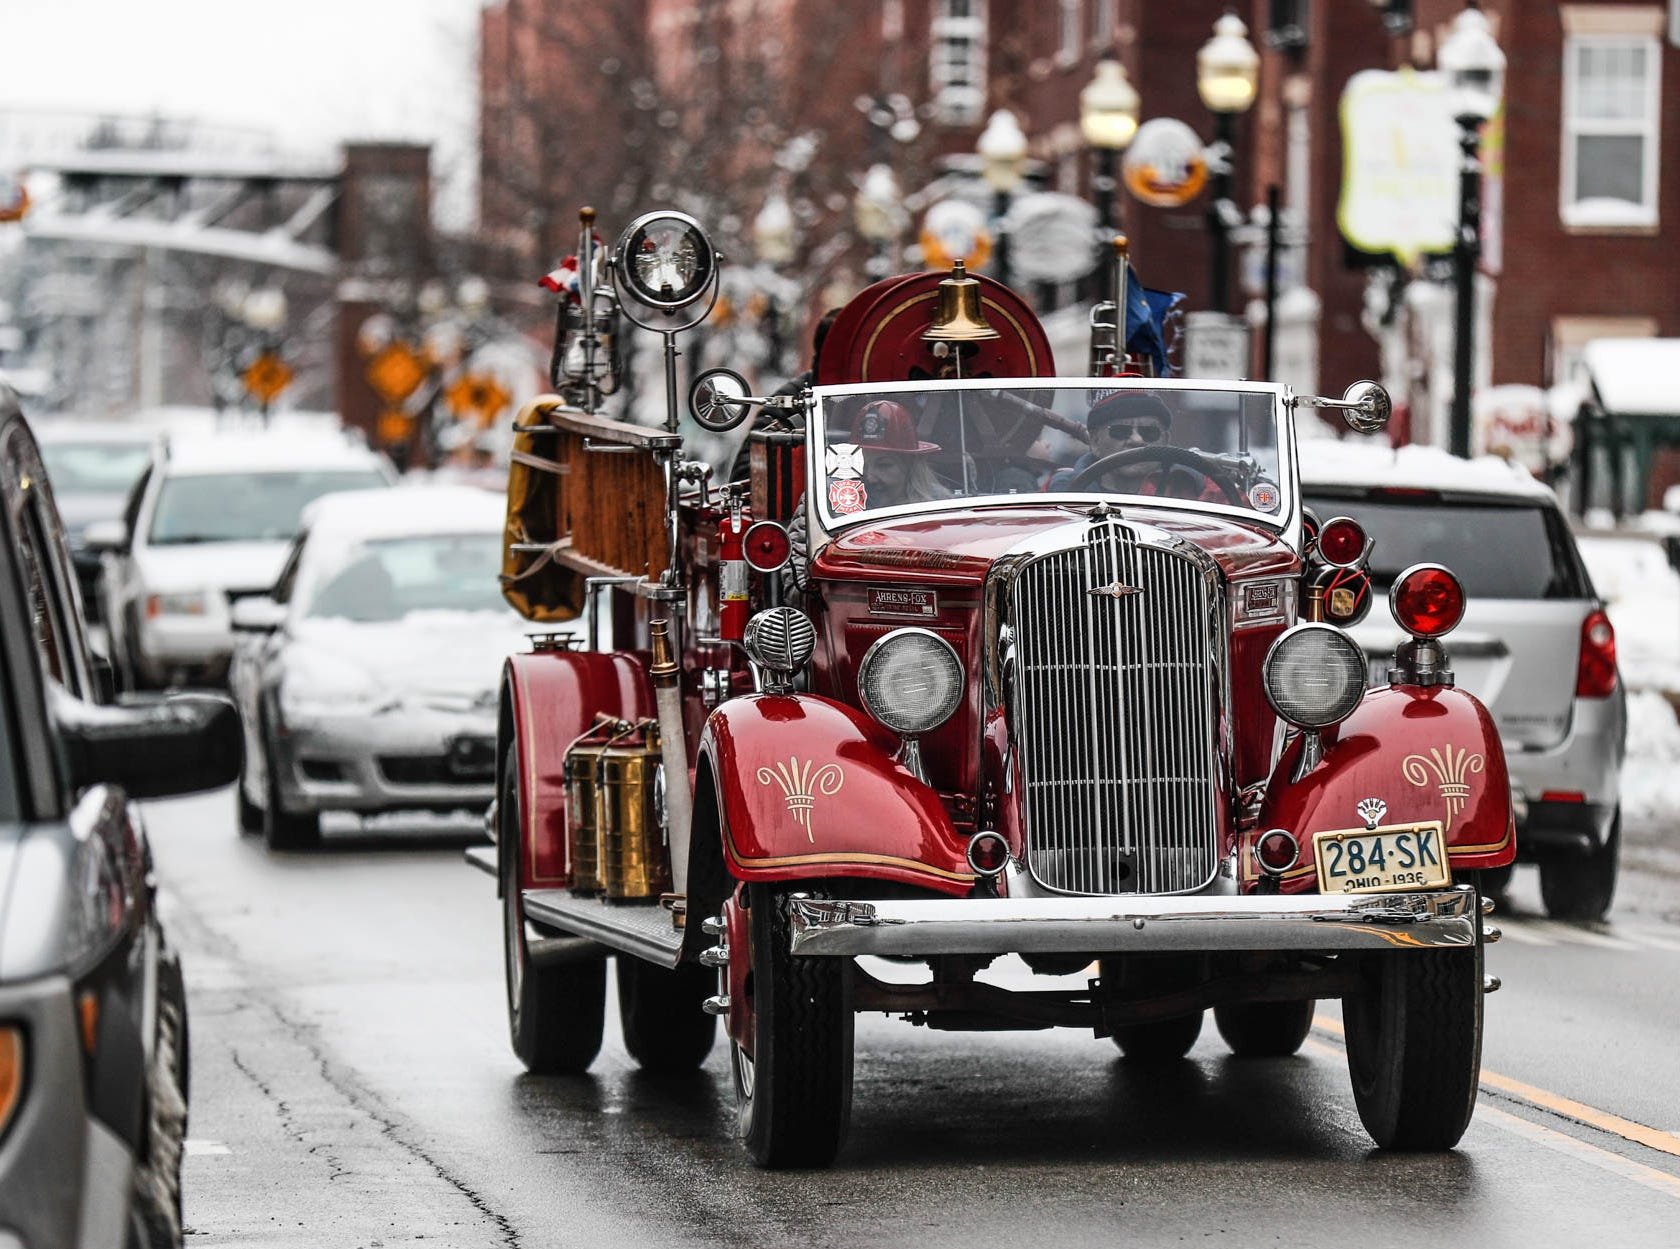 A antique fire engine drives through downtown Carmel Ind. on Sunday, Jan. 13, 2019.